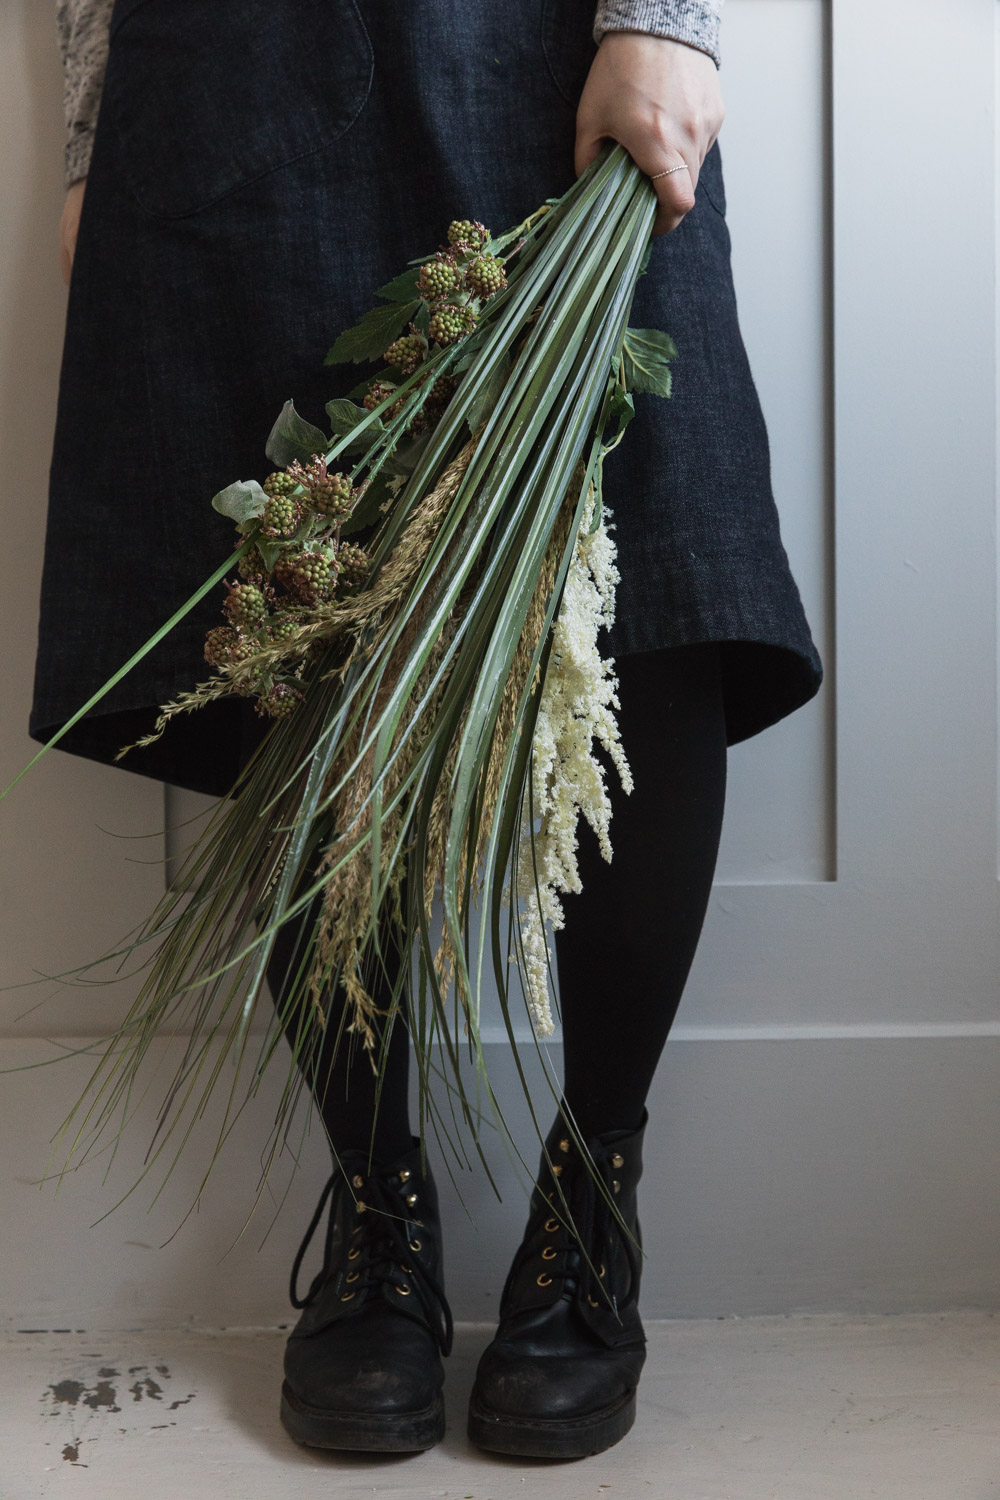 Holding bouquet of grasses by apron